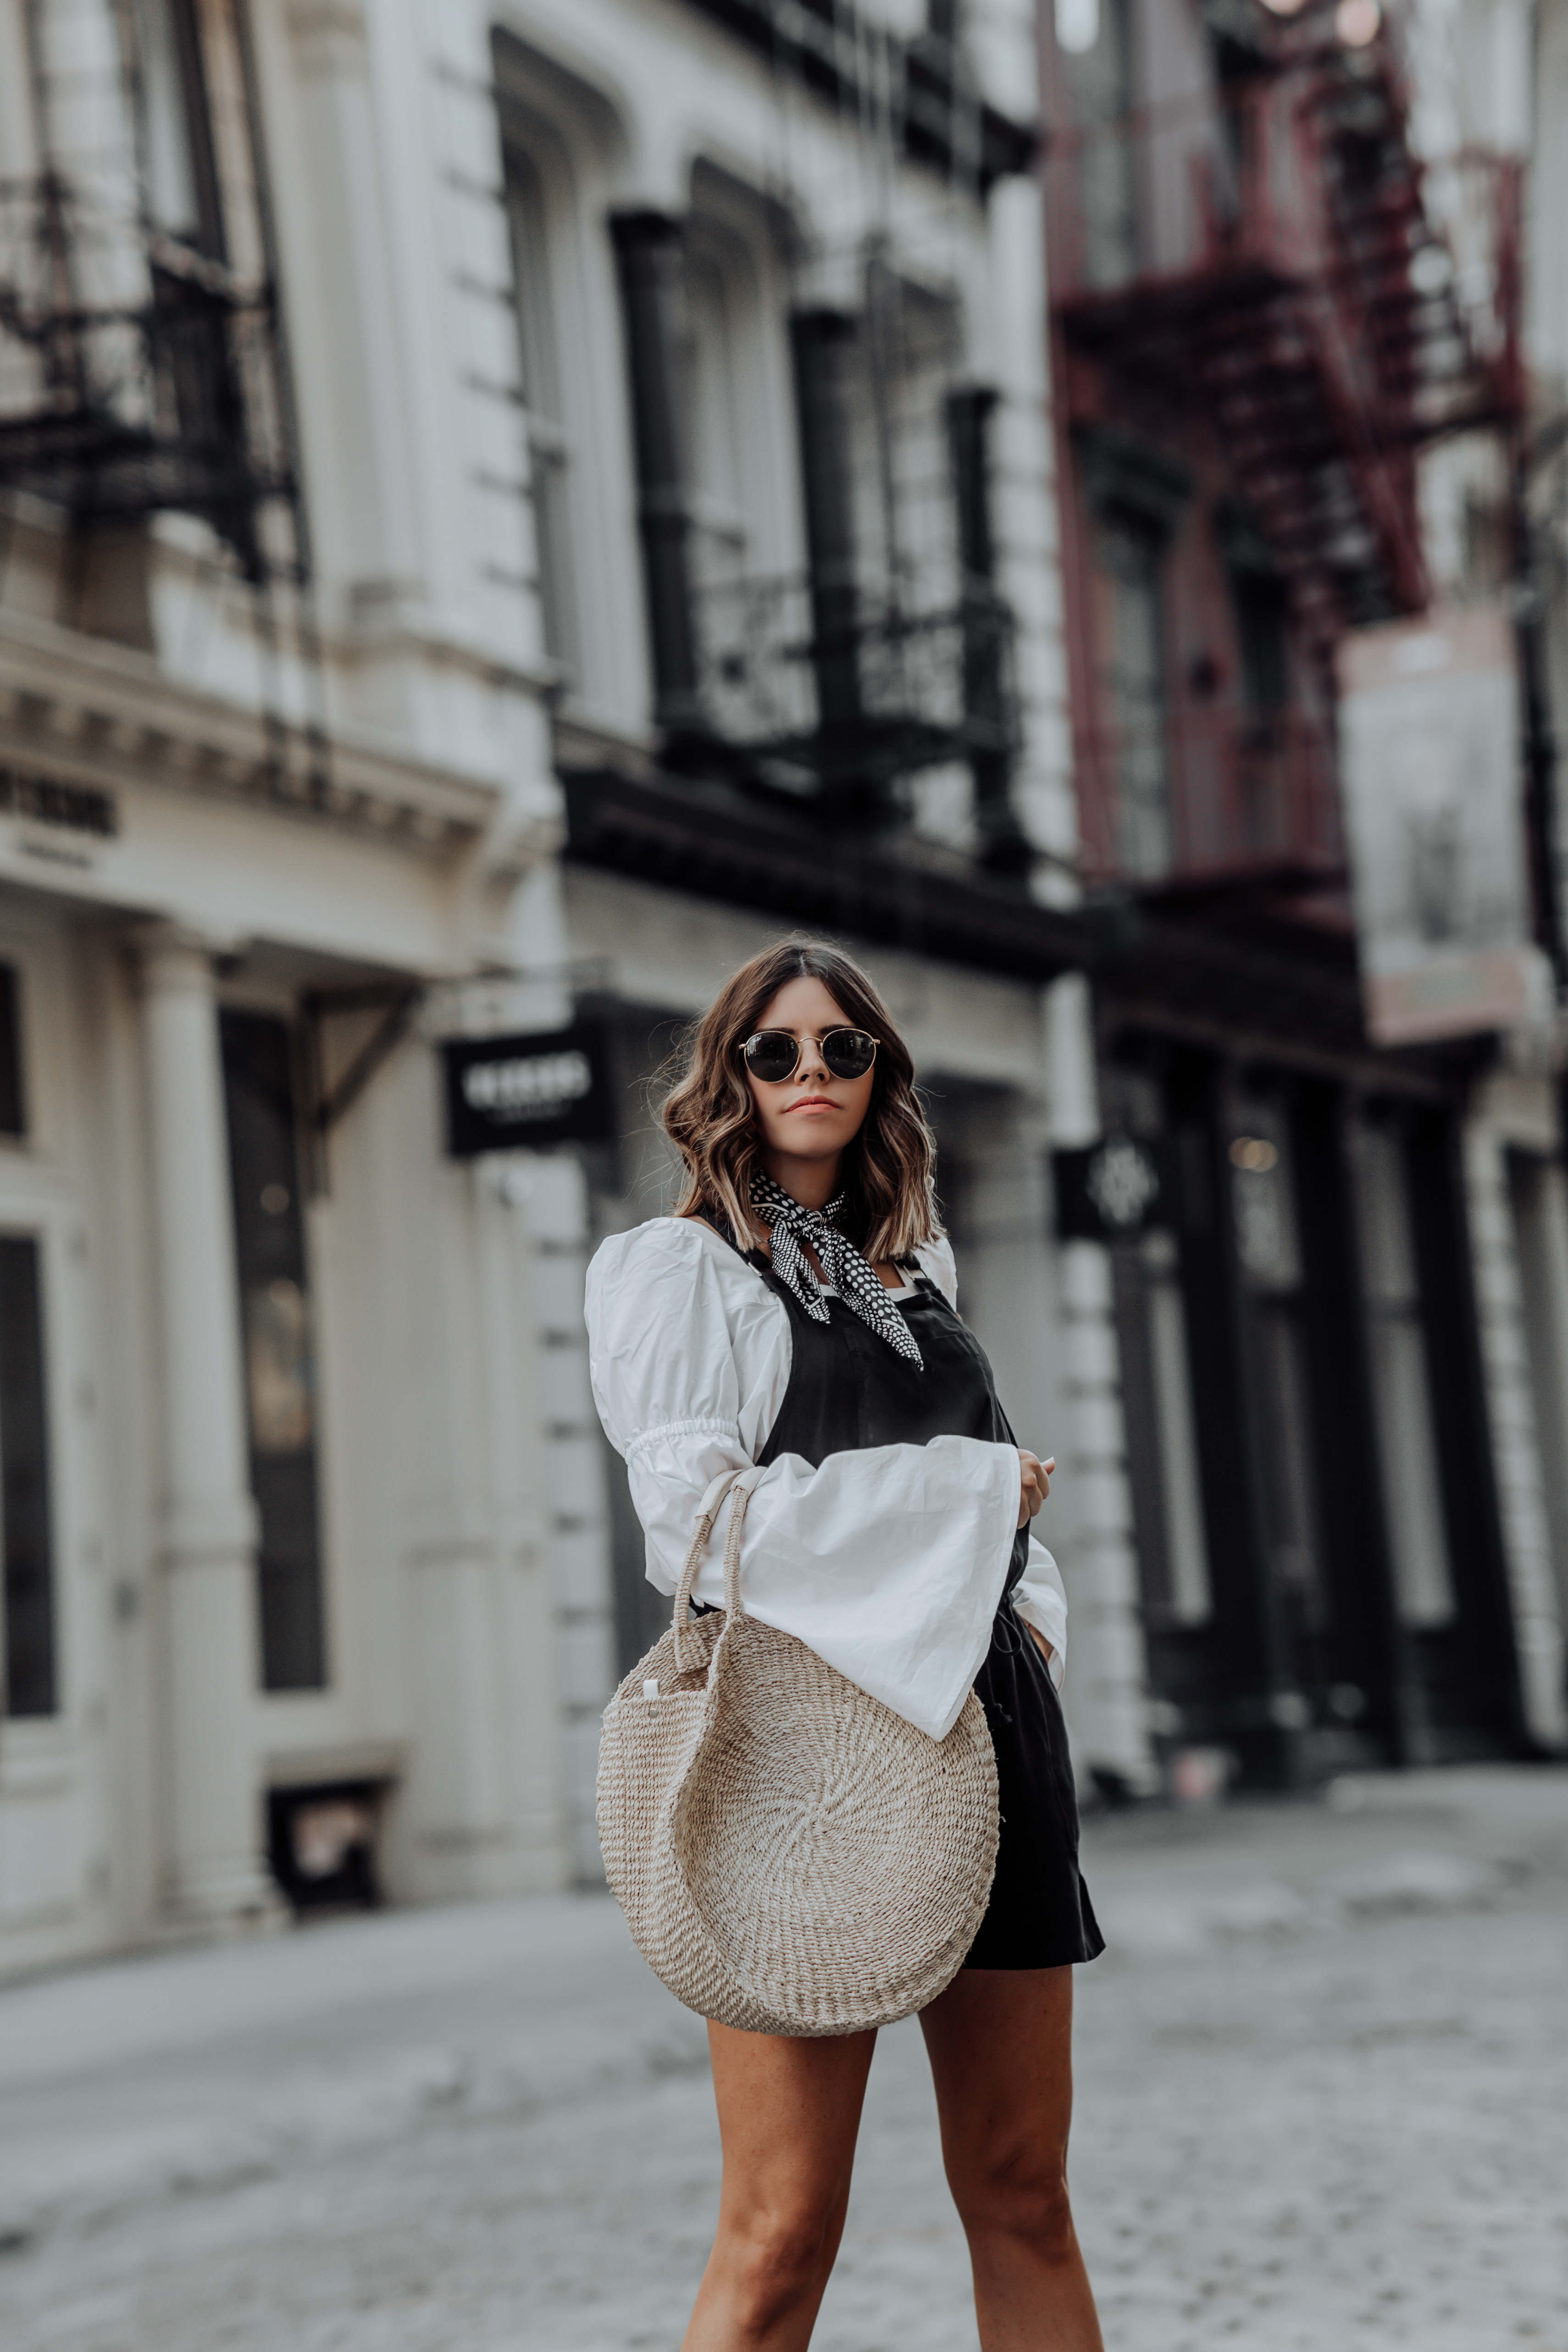 Tiffany Jais fashion and lifestyle blogger of Flaunt and Center | NYC fashion blogger | Kohl's outfit style | Streetstyle blog #liketkit #ootd #kohls #streetstyle